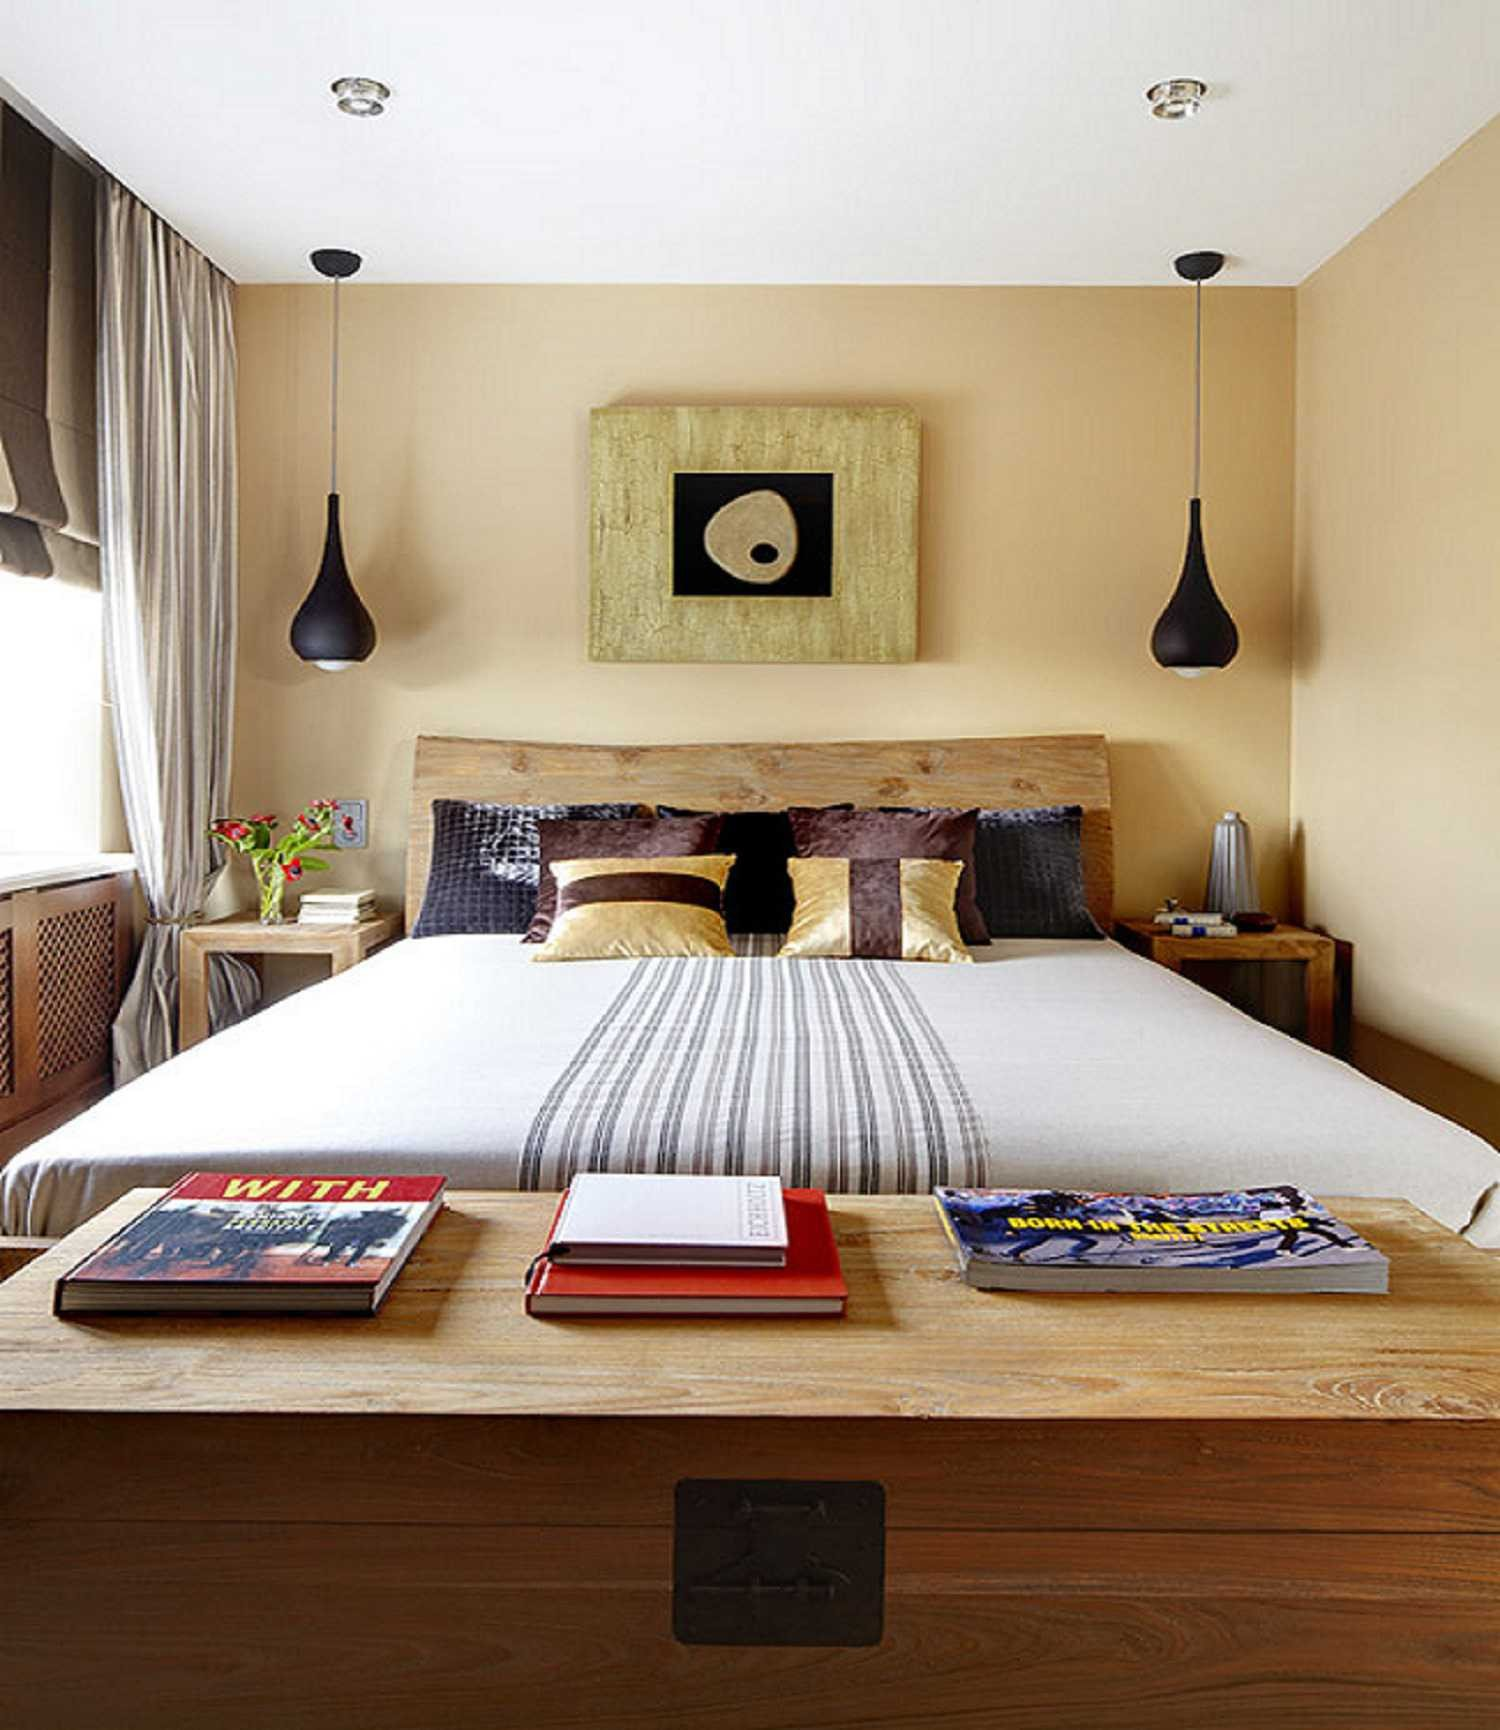 12x12 Bedroom Furniture Layout Fresh Small Master Bedroom Design Ideas Tips and S